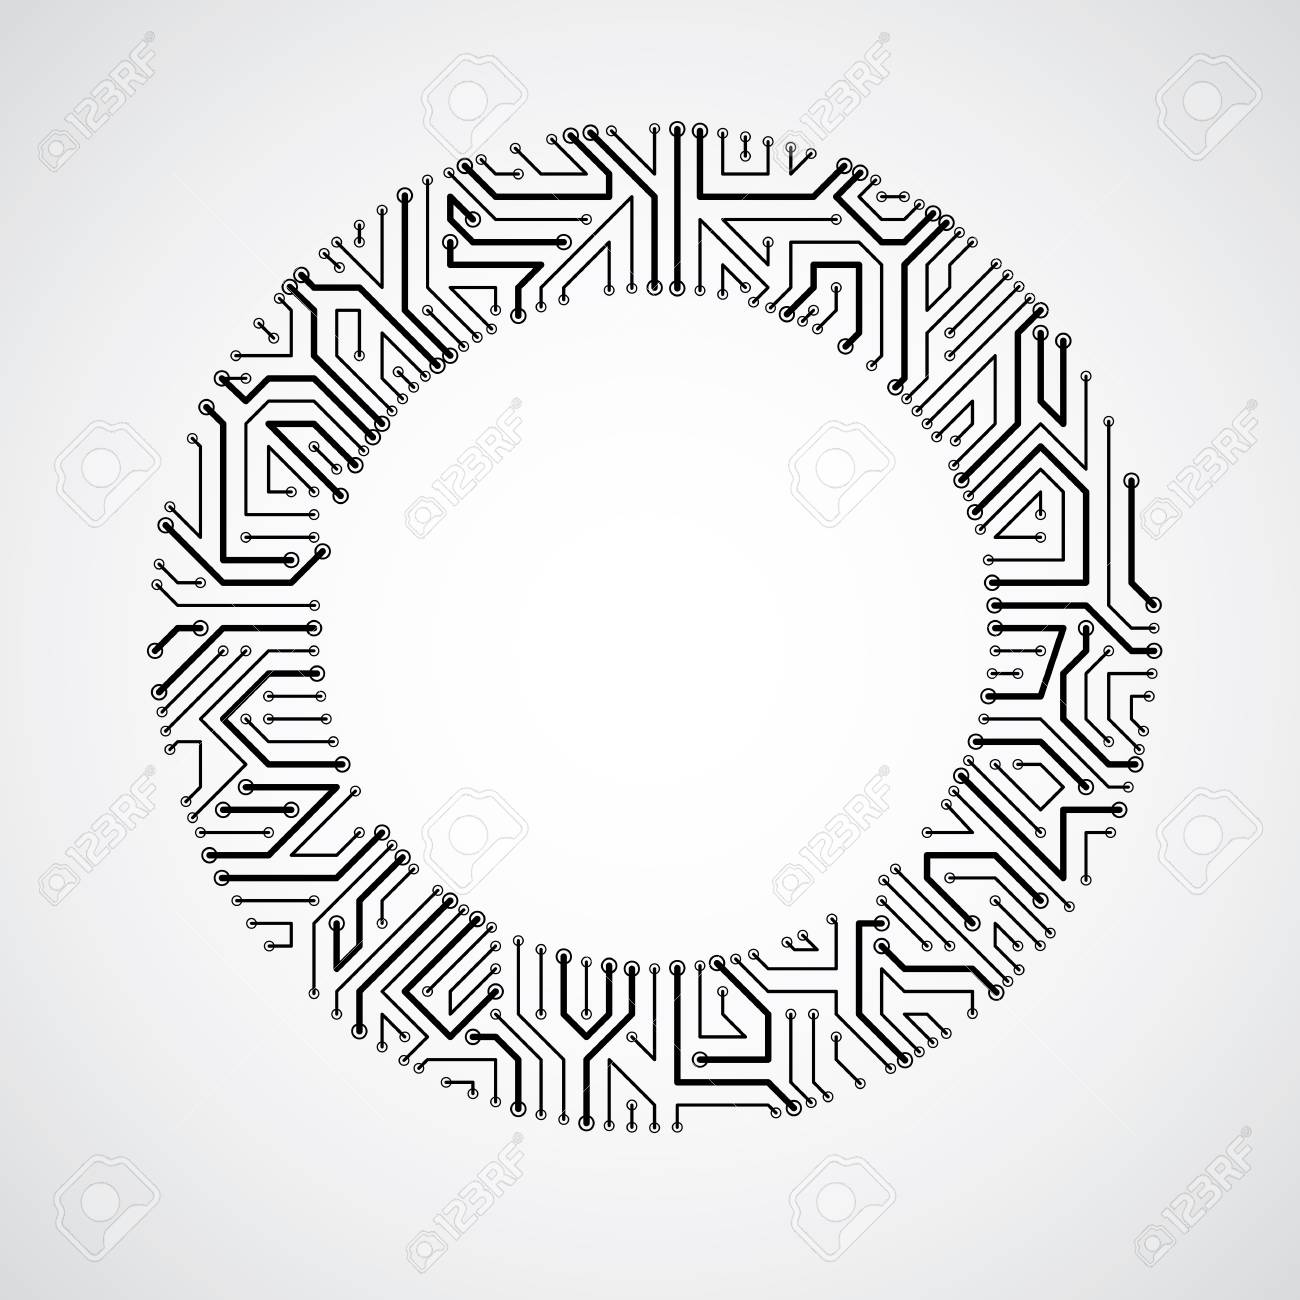 Vector Abstract Technology Illustration With Round Monochrome ...